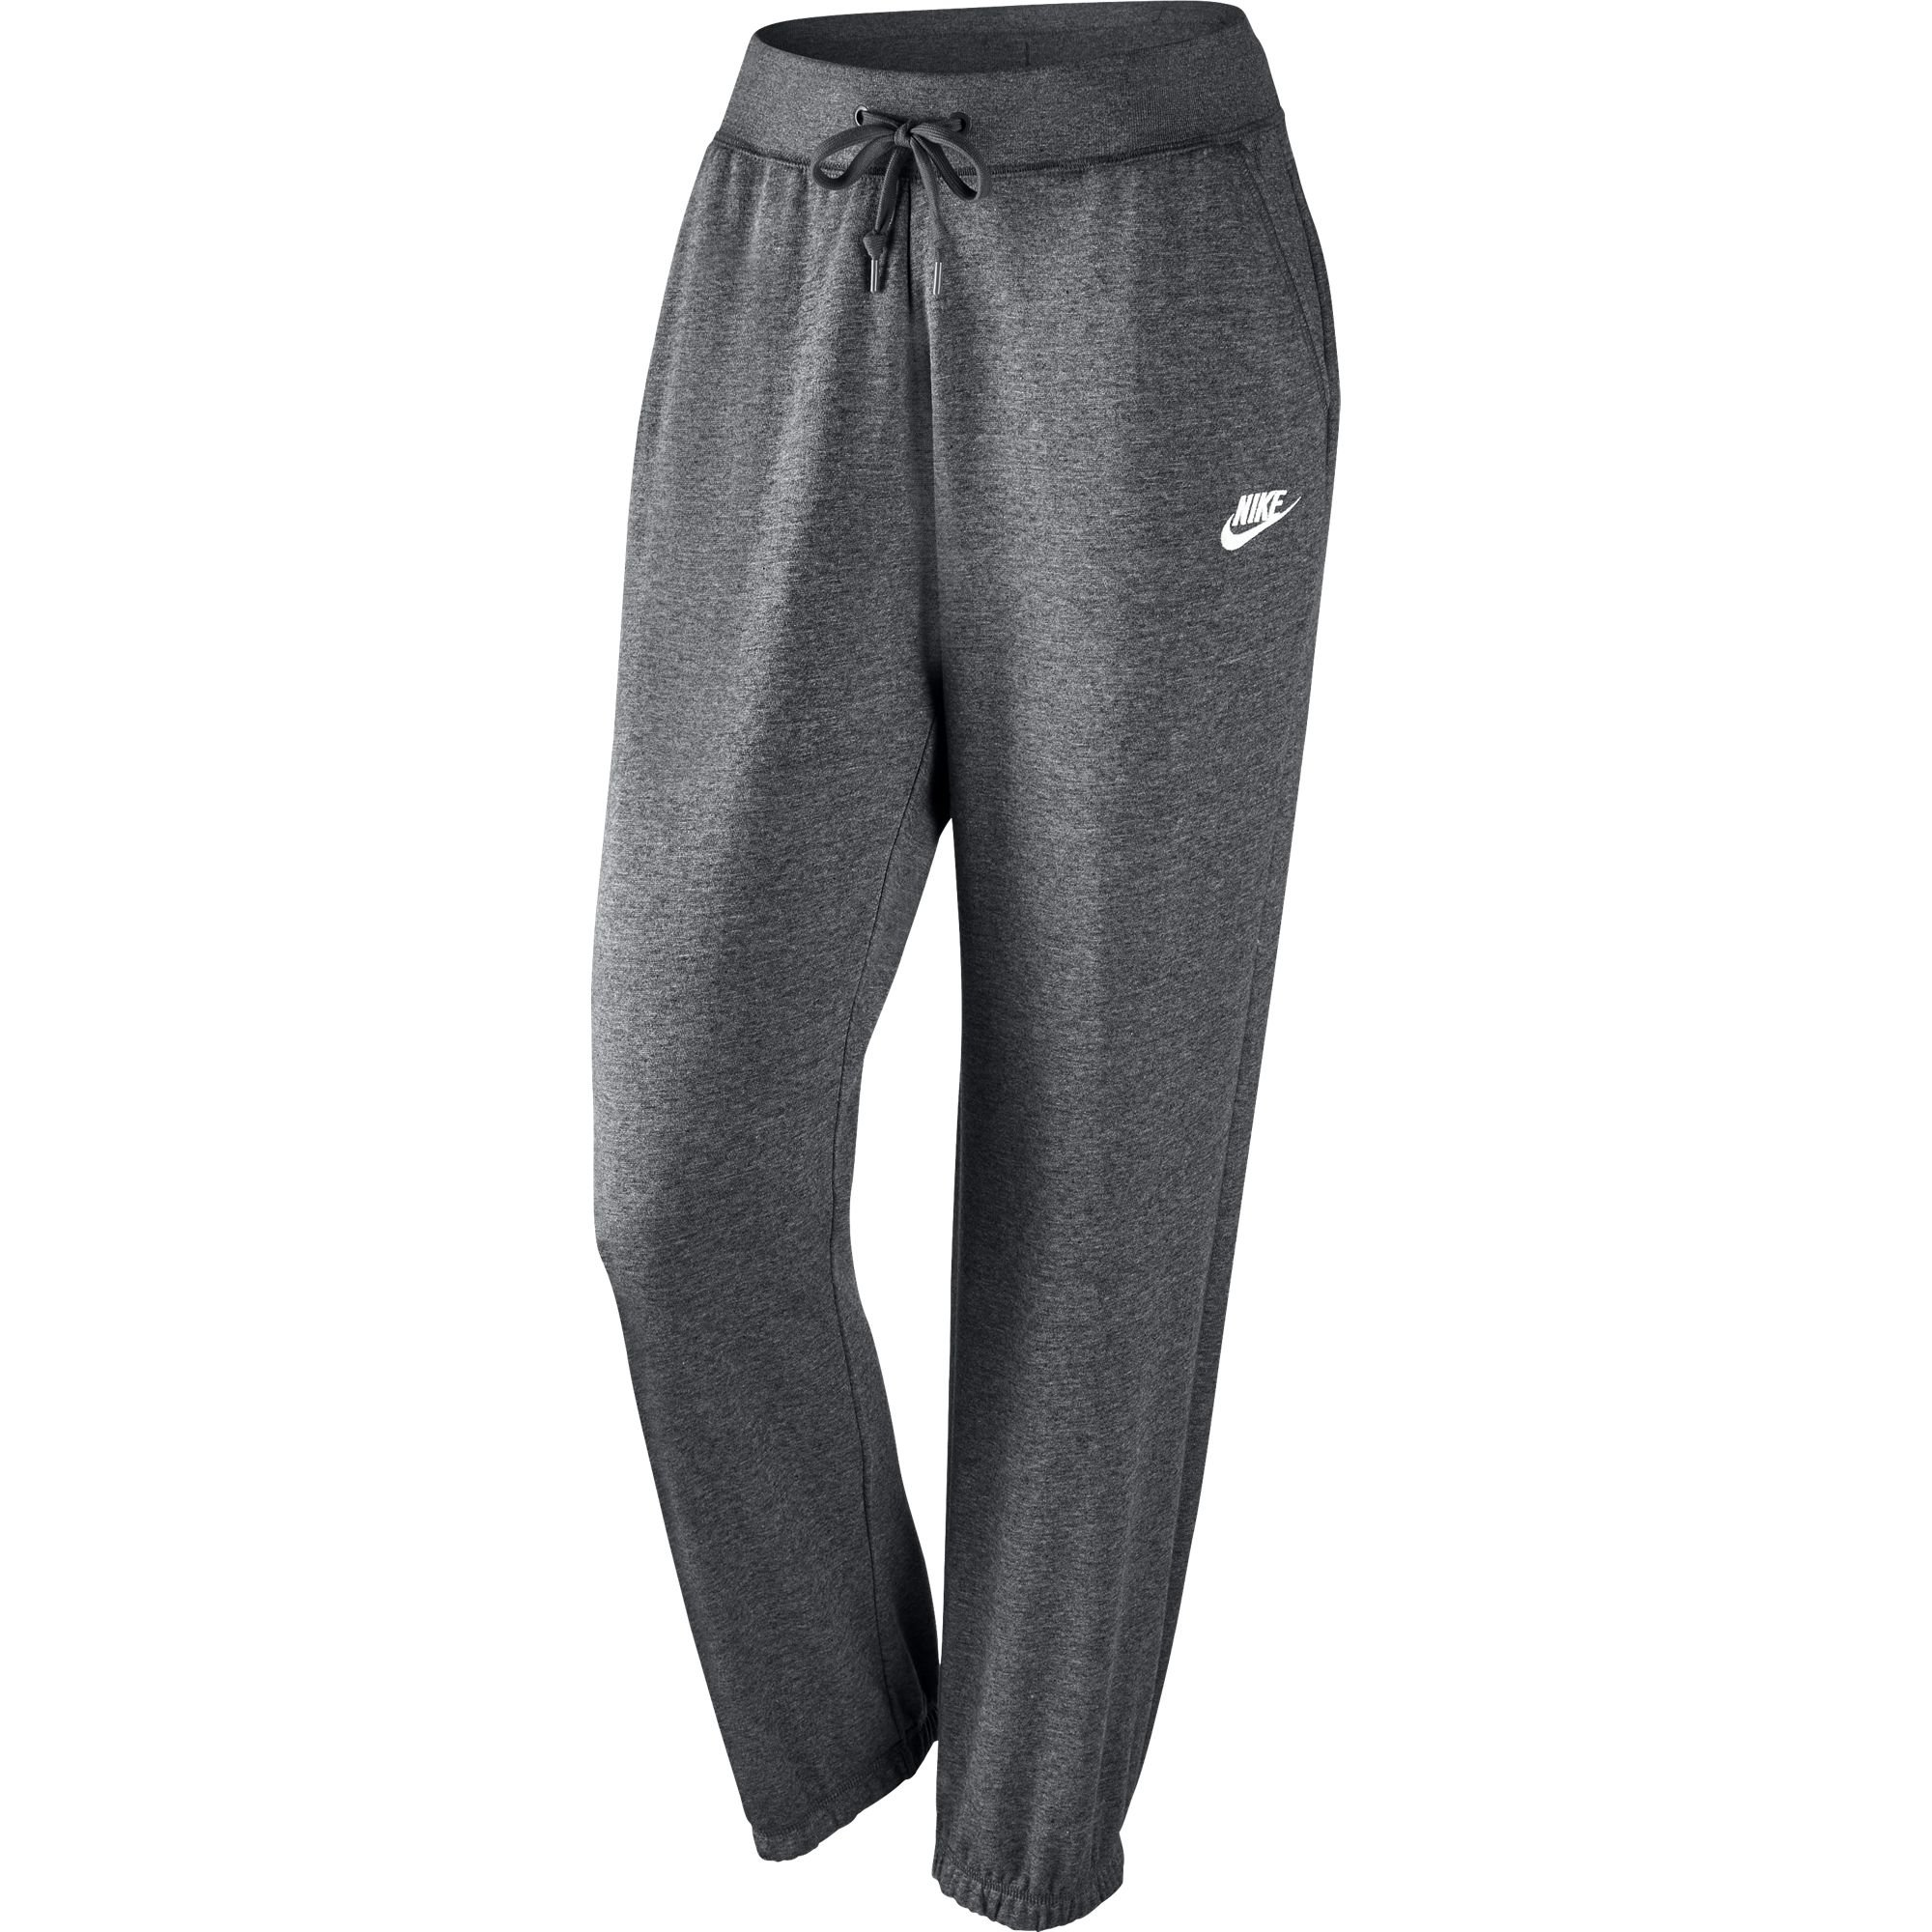 NIKE Women's Sportswear Loose Fleece Pants, Charcoal Heather/Dark Grey/White, X-Small